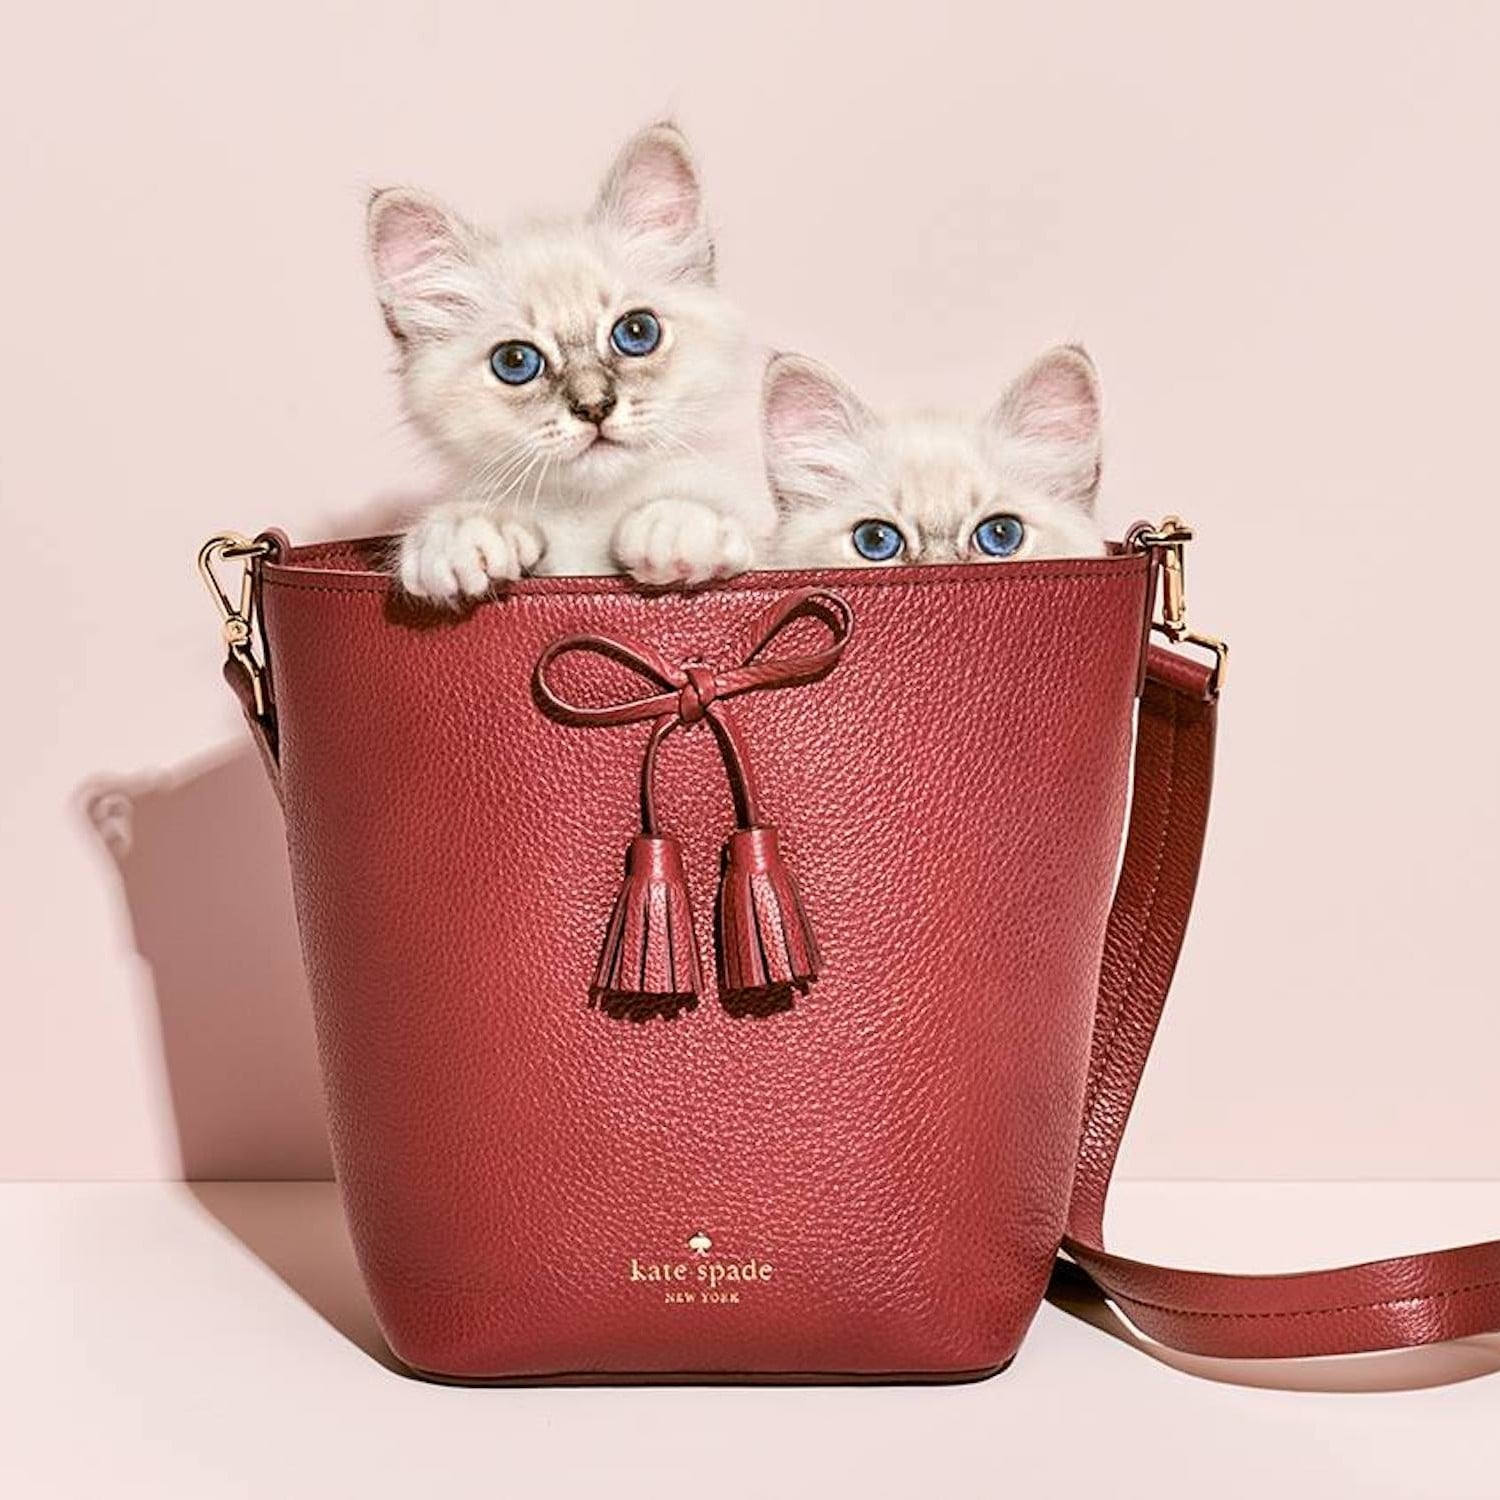 Kate Spade New York Cameron Street Flock Roses Small Hayden Tote Pink Products On Amazon Popsugar Fashion Photo 2